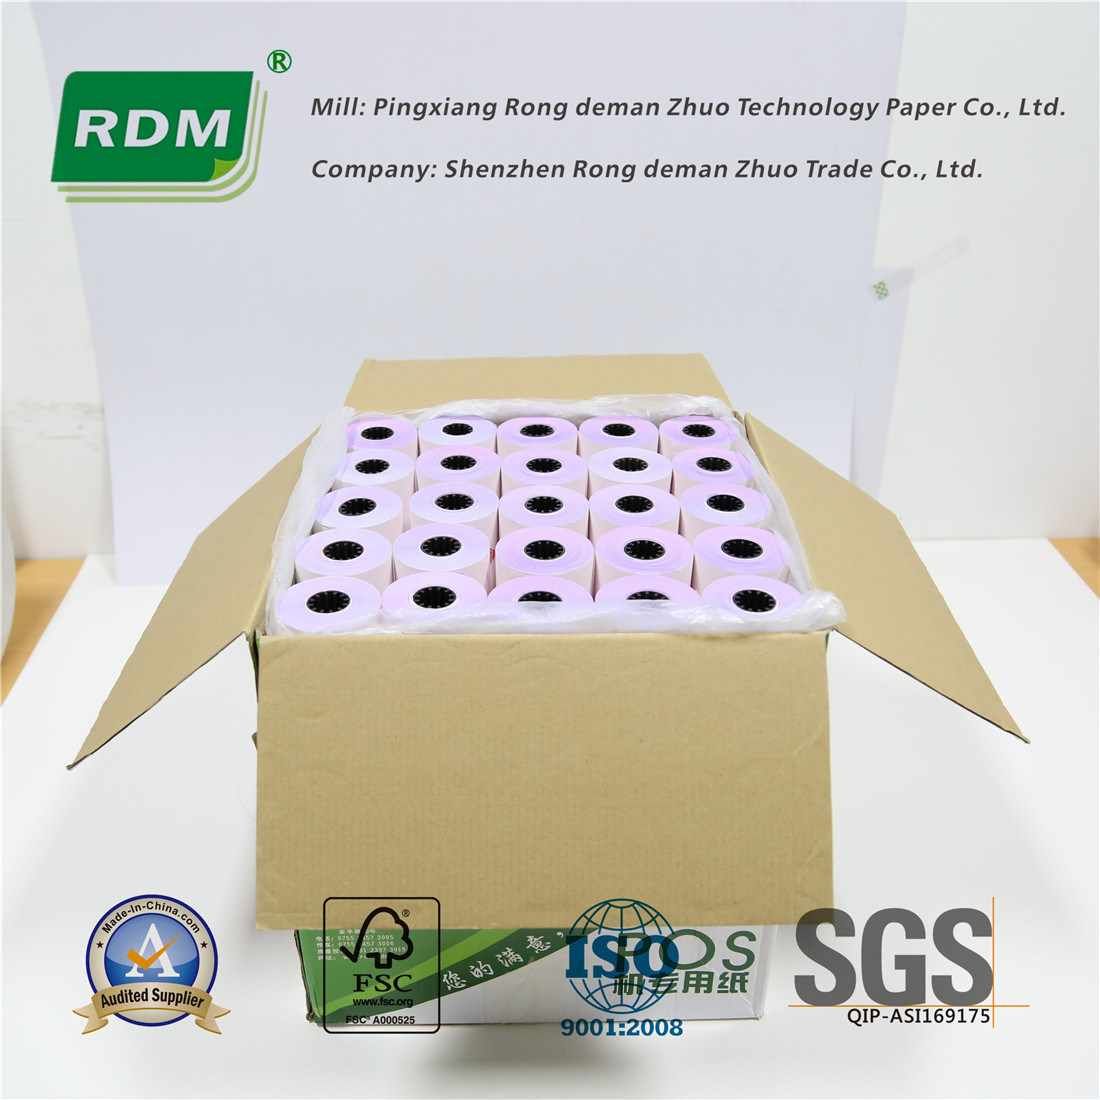 3 Ply Carbonless Paper Roll for DOT-Matrix Printers